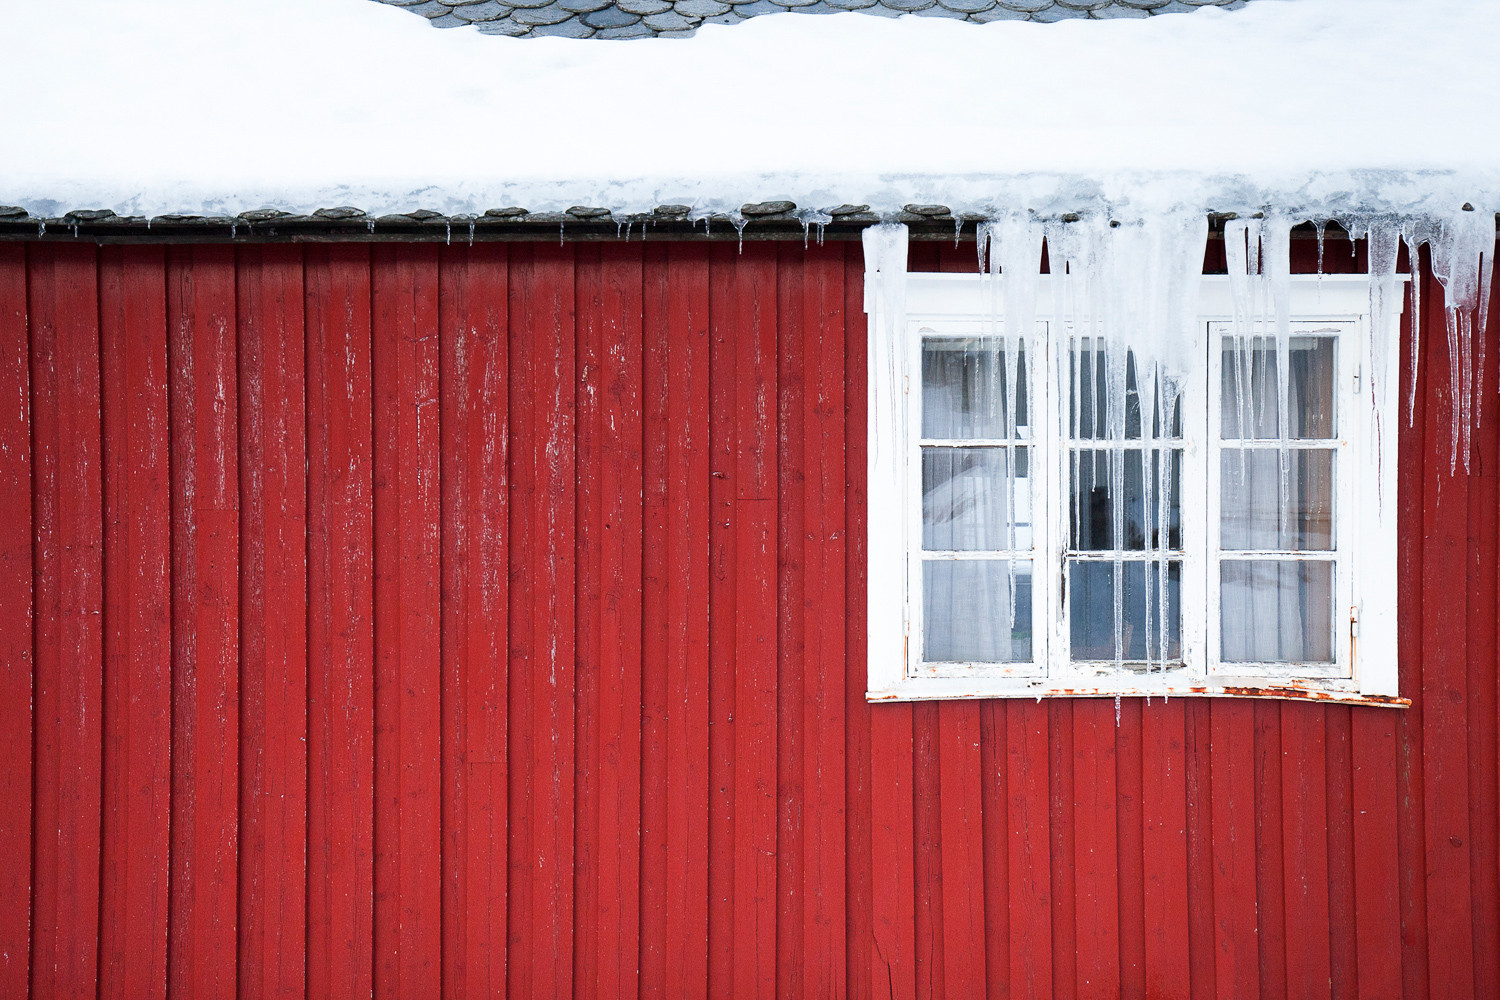 Red Wooden Boards in Hamnoy